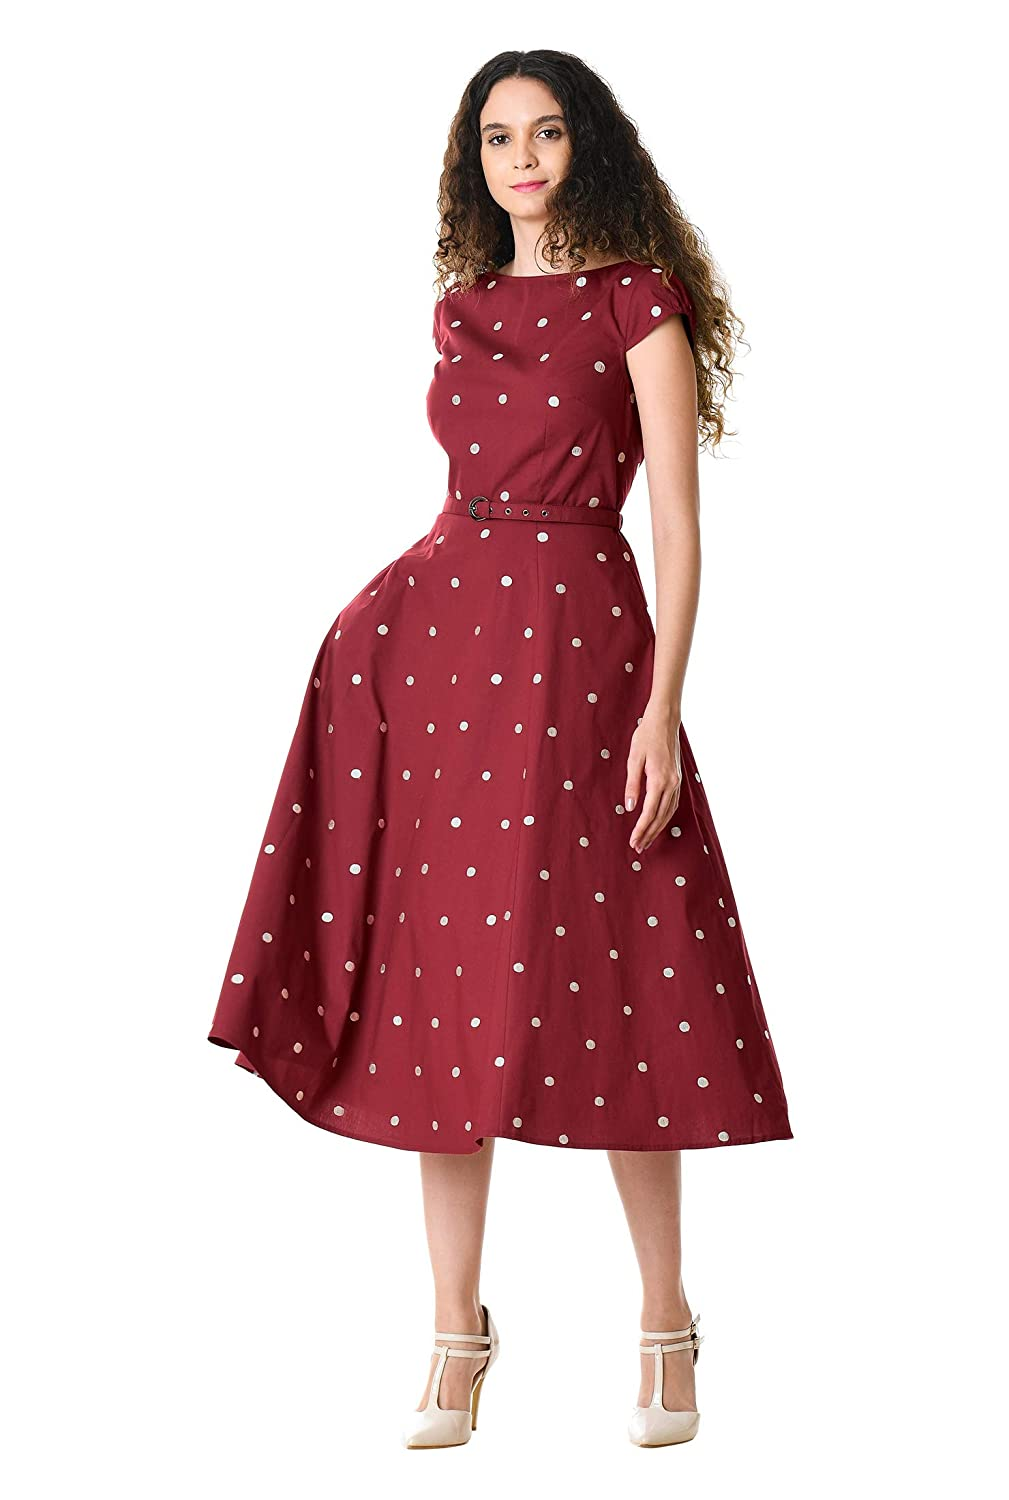 60s 70s Plus Size Dresses, Clothing, Costumes eShakti Womens Polka dot Embellished Cotton poplin Dress $74.95 AT vintagedancer.com